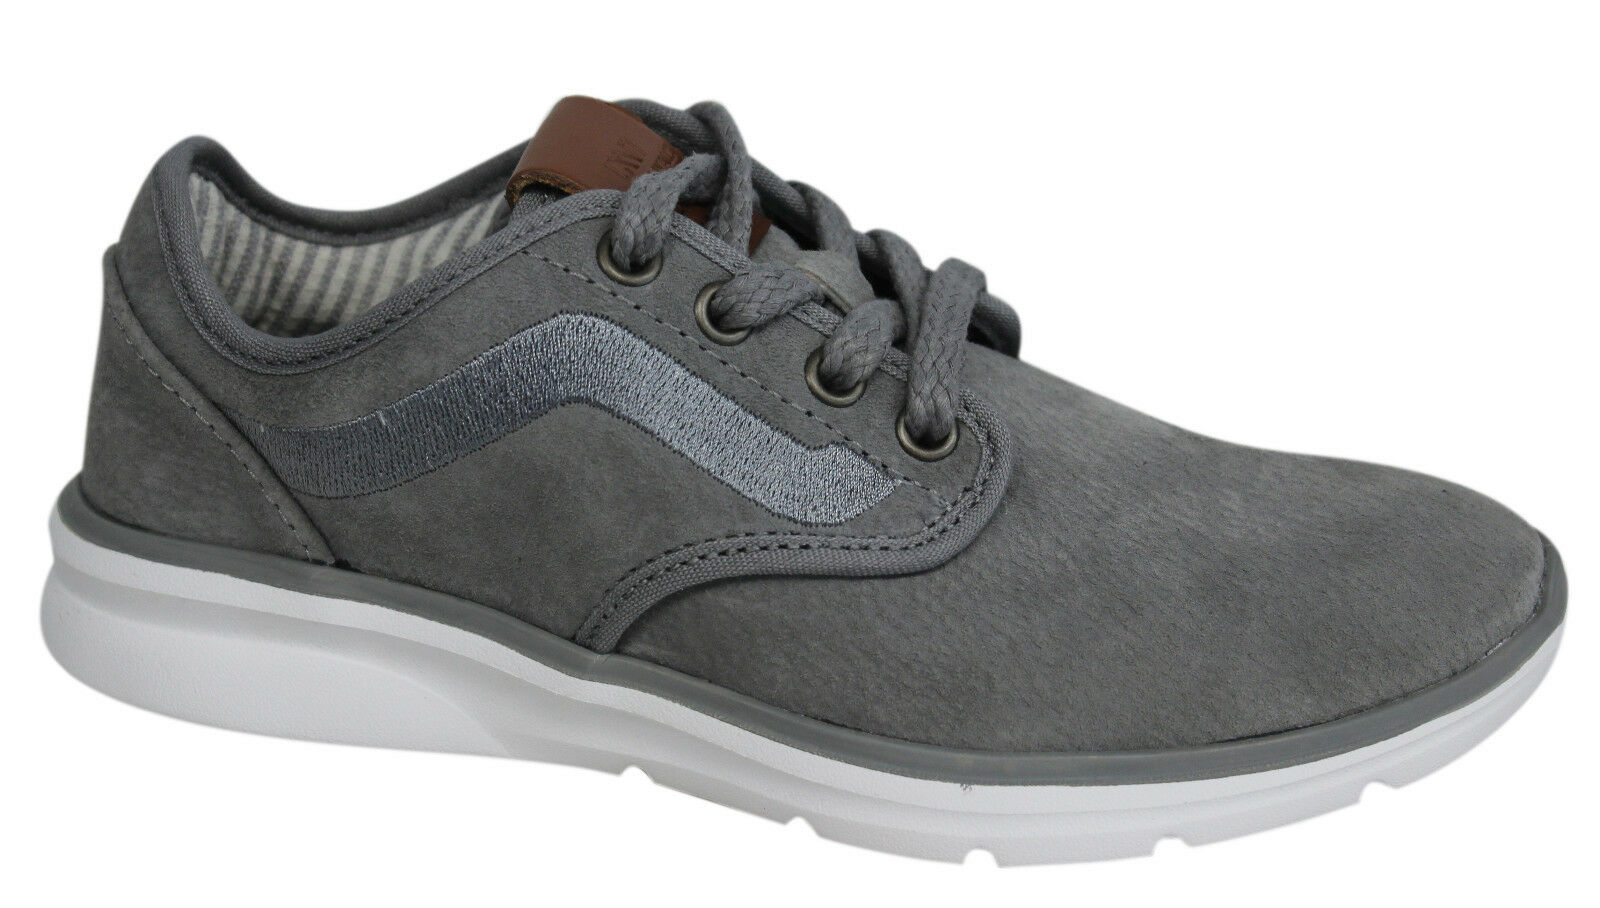 Vans Iso 2 Off The Wall Lace Uomo Up Grau Textile  Uomo Lace Trainers 184I4G D37 93b36e